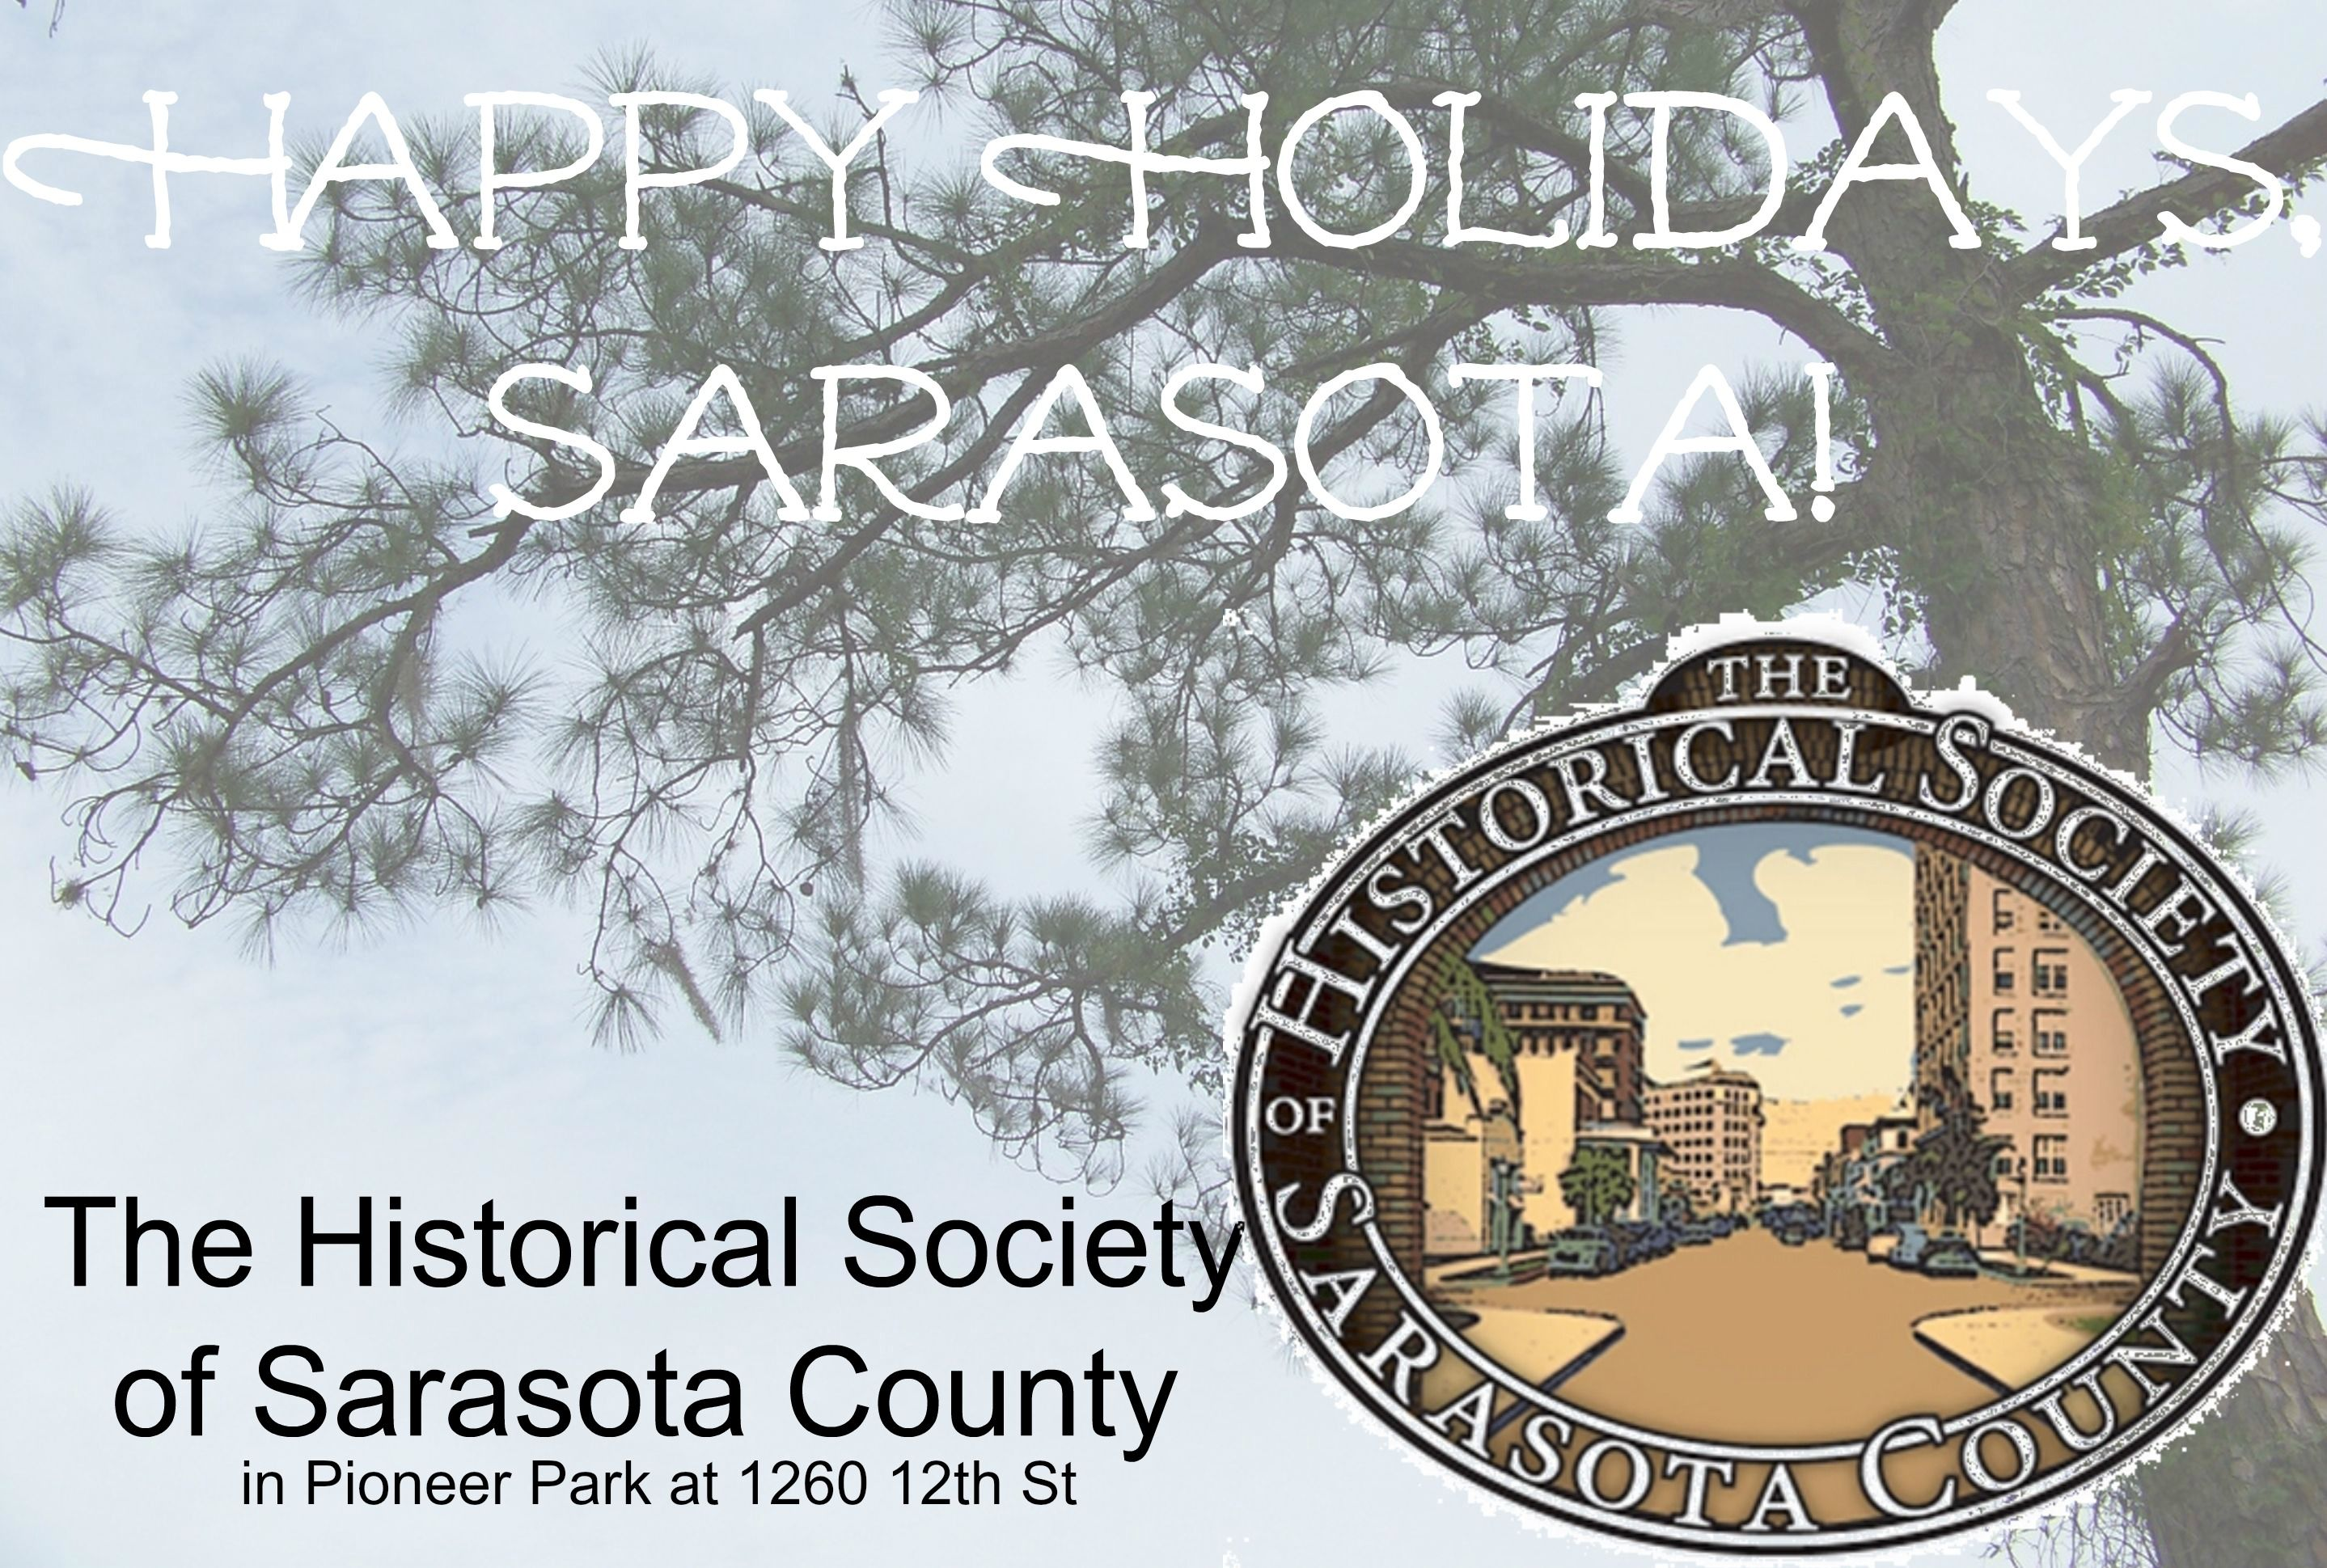 Happy Holidays from the Historical Society of Sarasota County